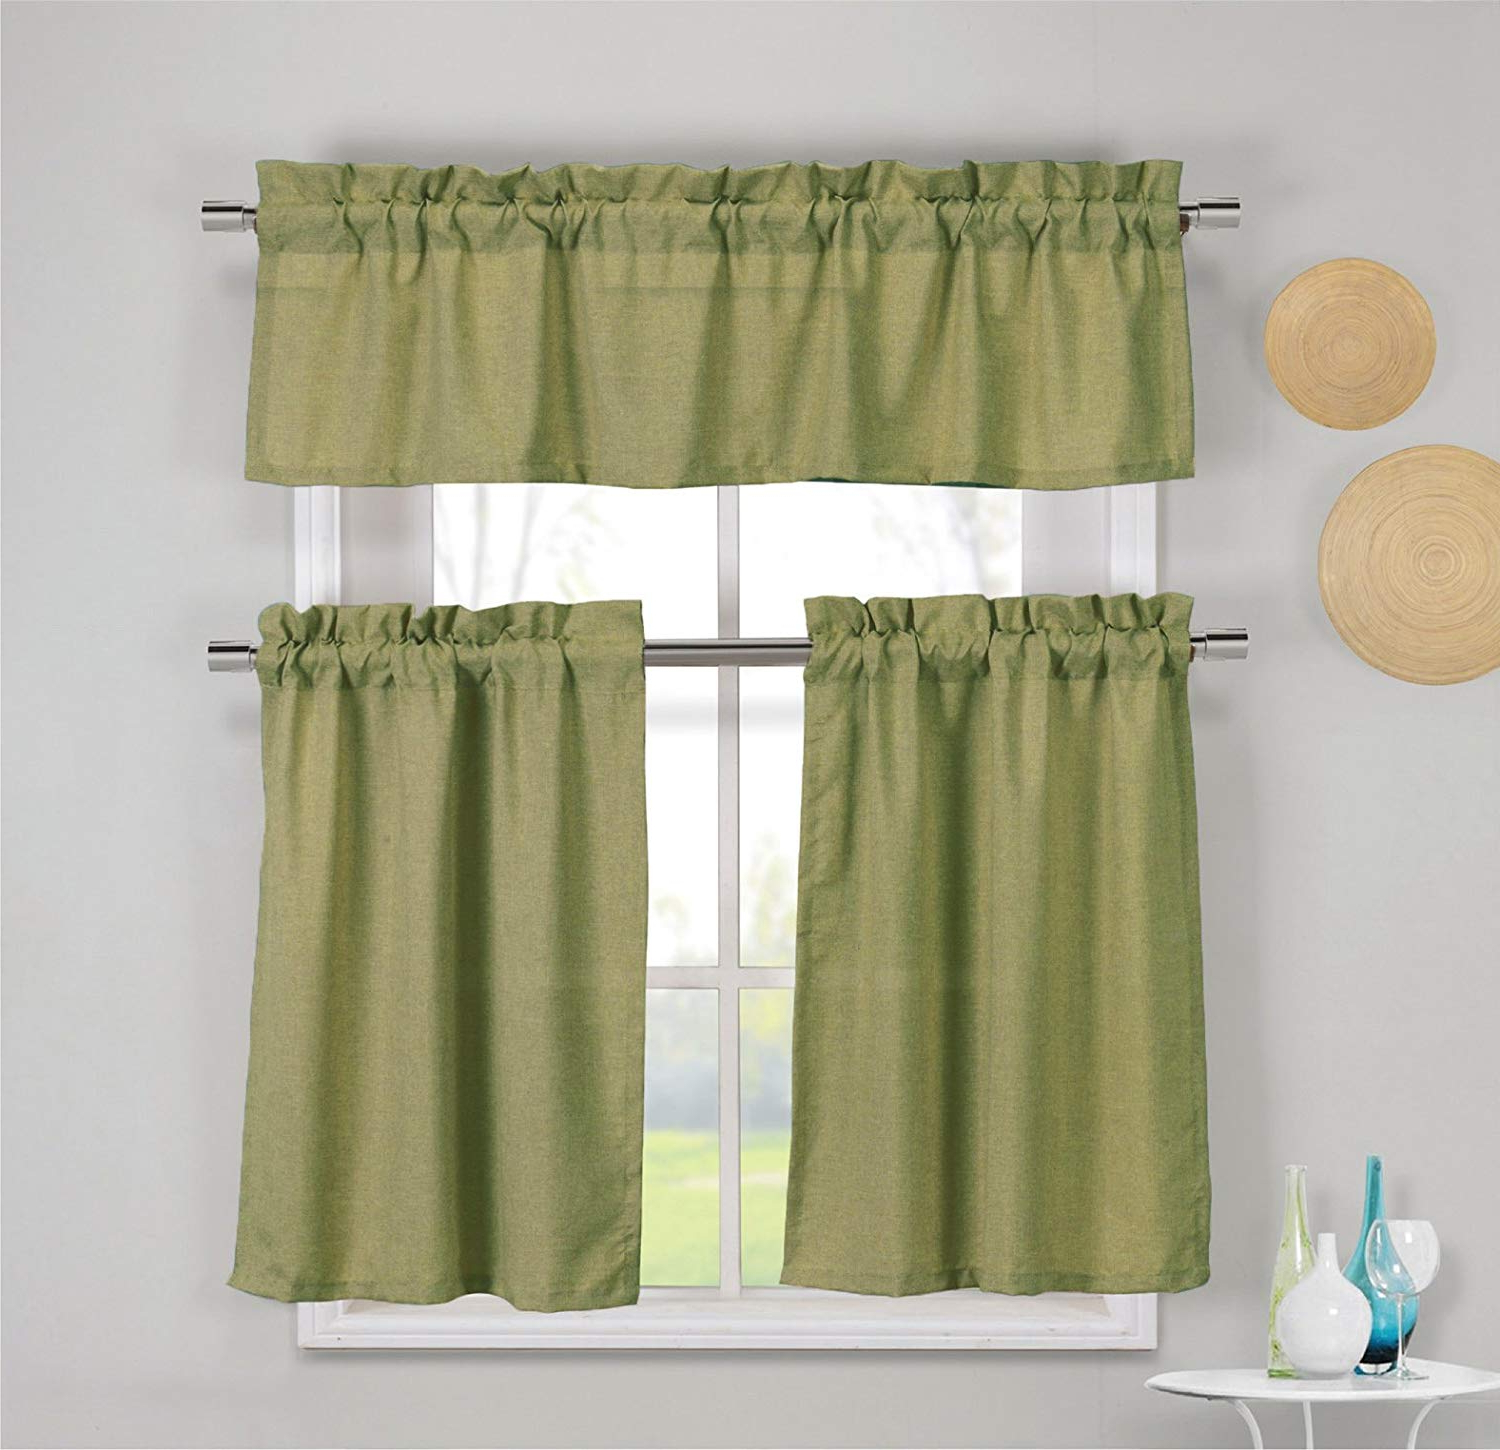 Most Current Solid Microfiber 3 Piece Kitchen Curtain Valance And Tiers Sets Regarding 3 Piece Faux Cotton Kitchen Window Curtain Panel Set With 1 Valance And 2 Tier Panel Curtains (espresso Brown) (View 2 of 20)